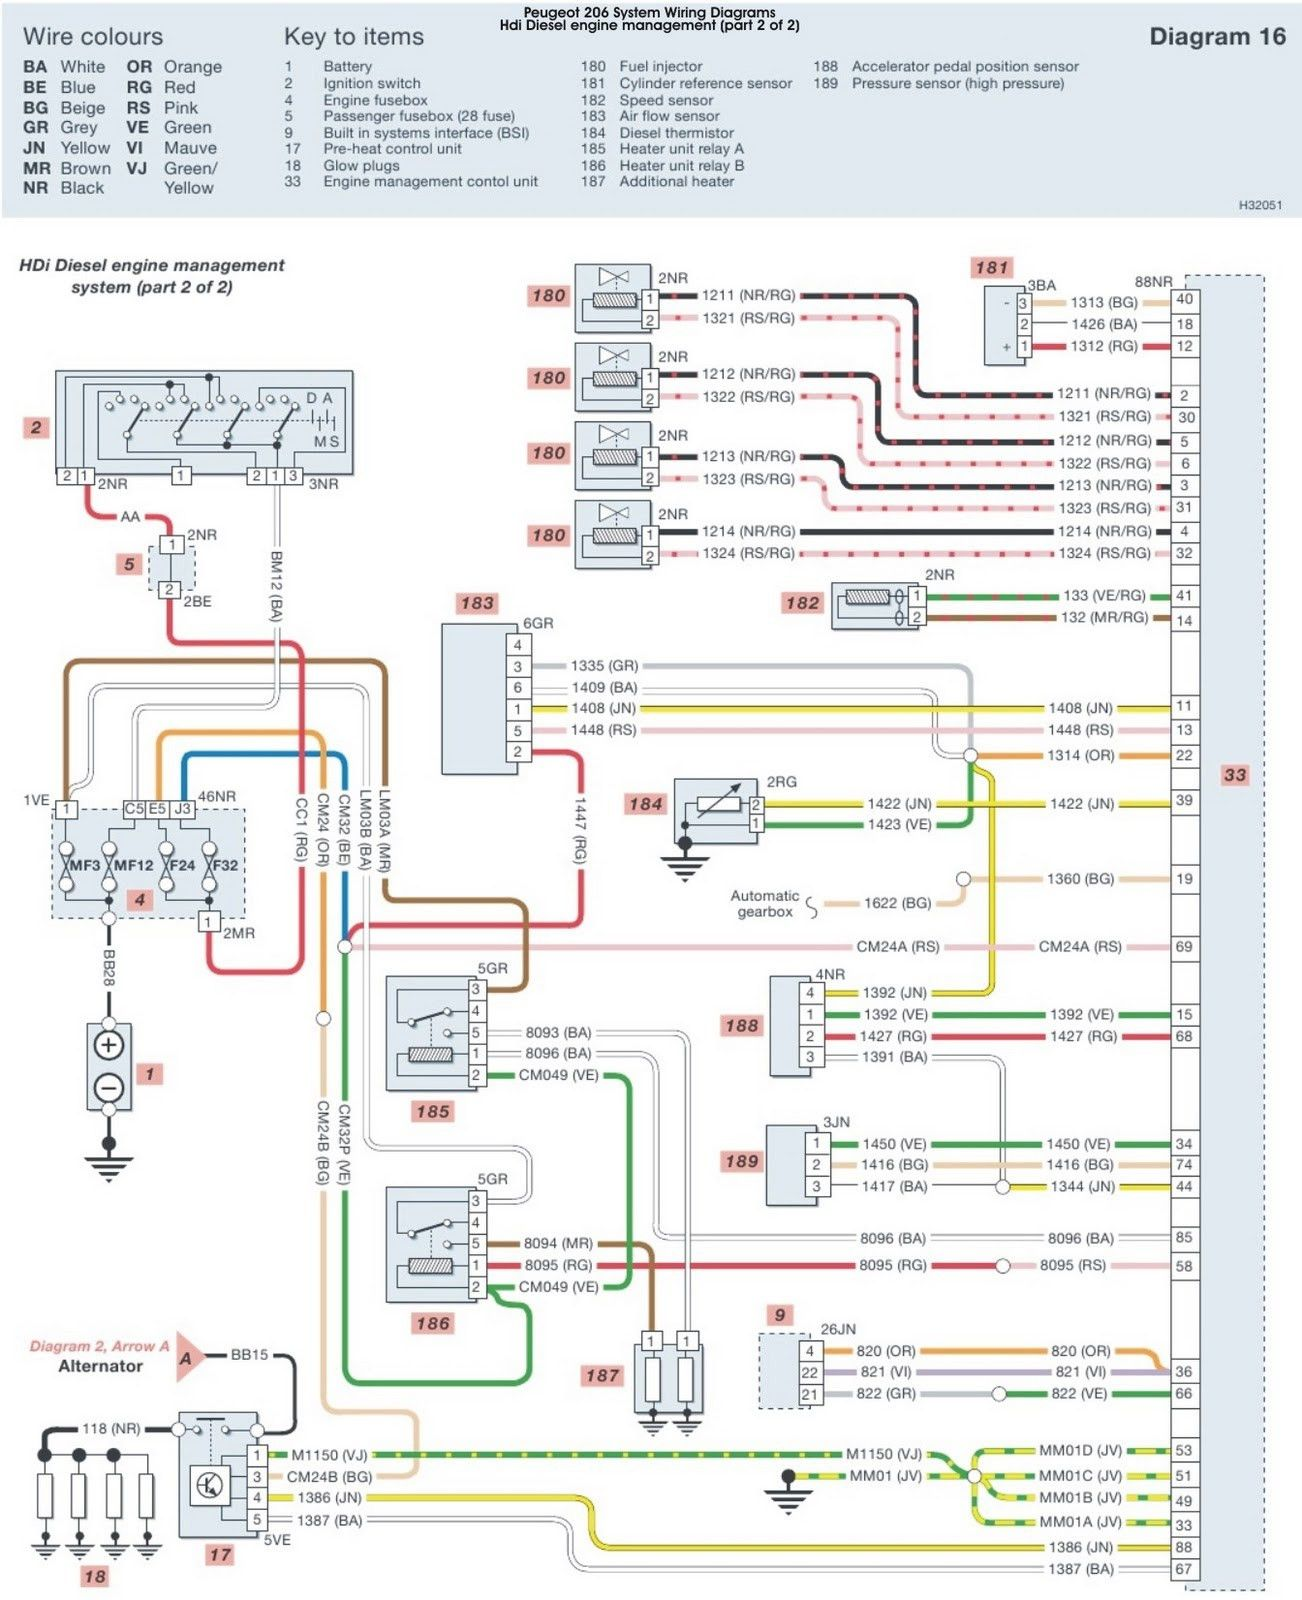 hight resolution of peugeot wiring diagram download wiring diagram fascinating peugeot 607 wiring diagram free download peugeot 607 wiring diagram